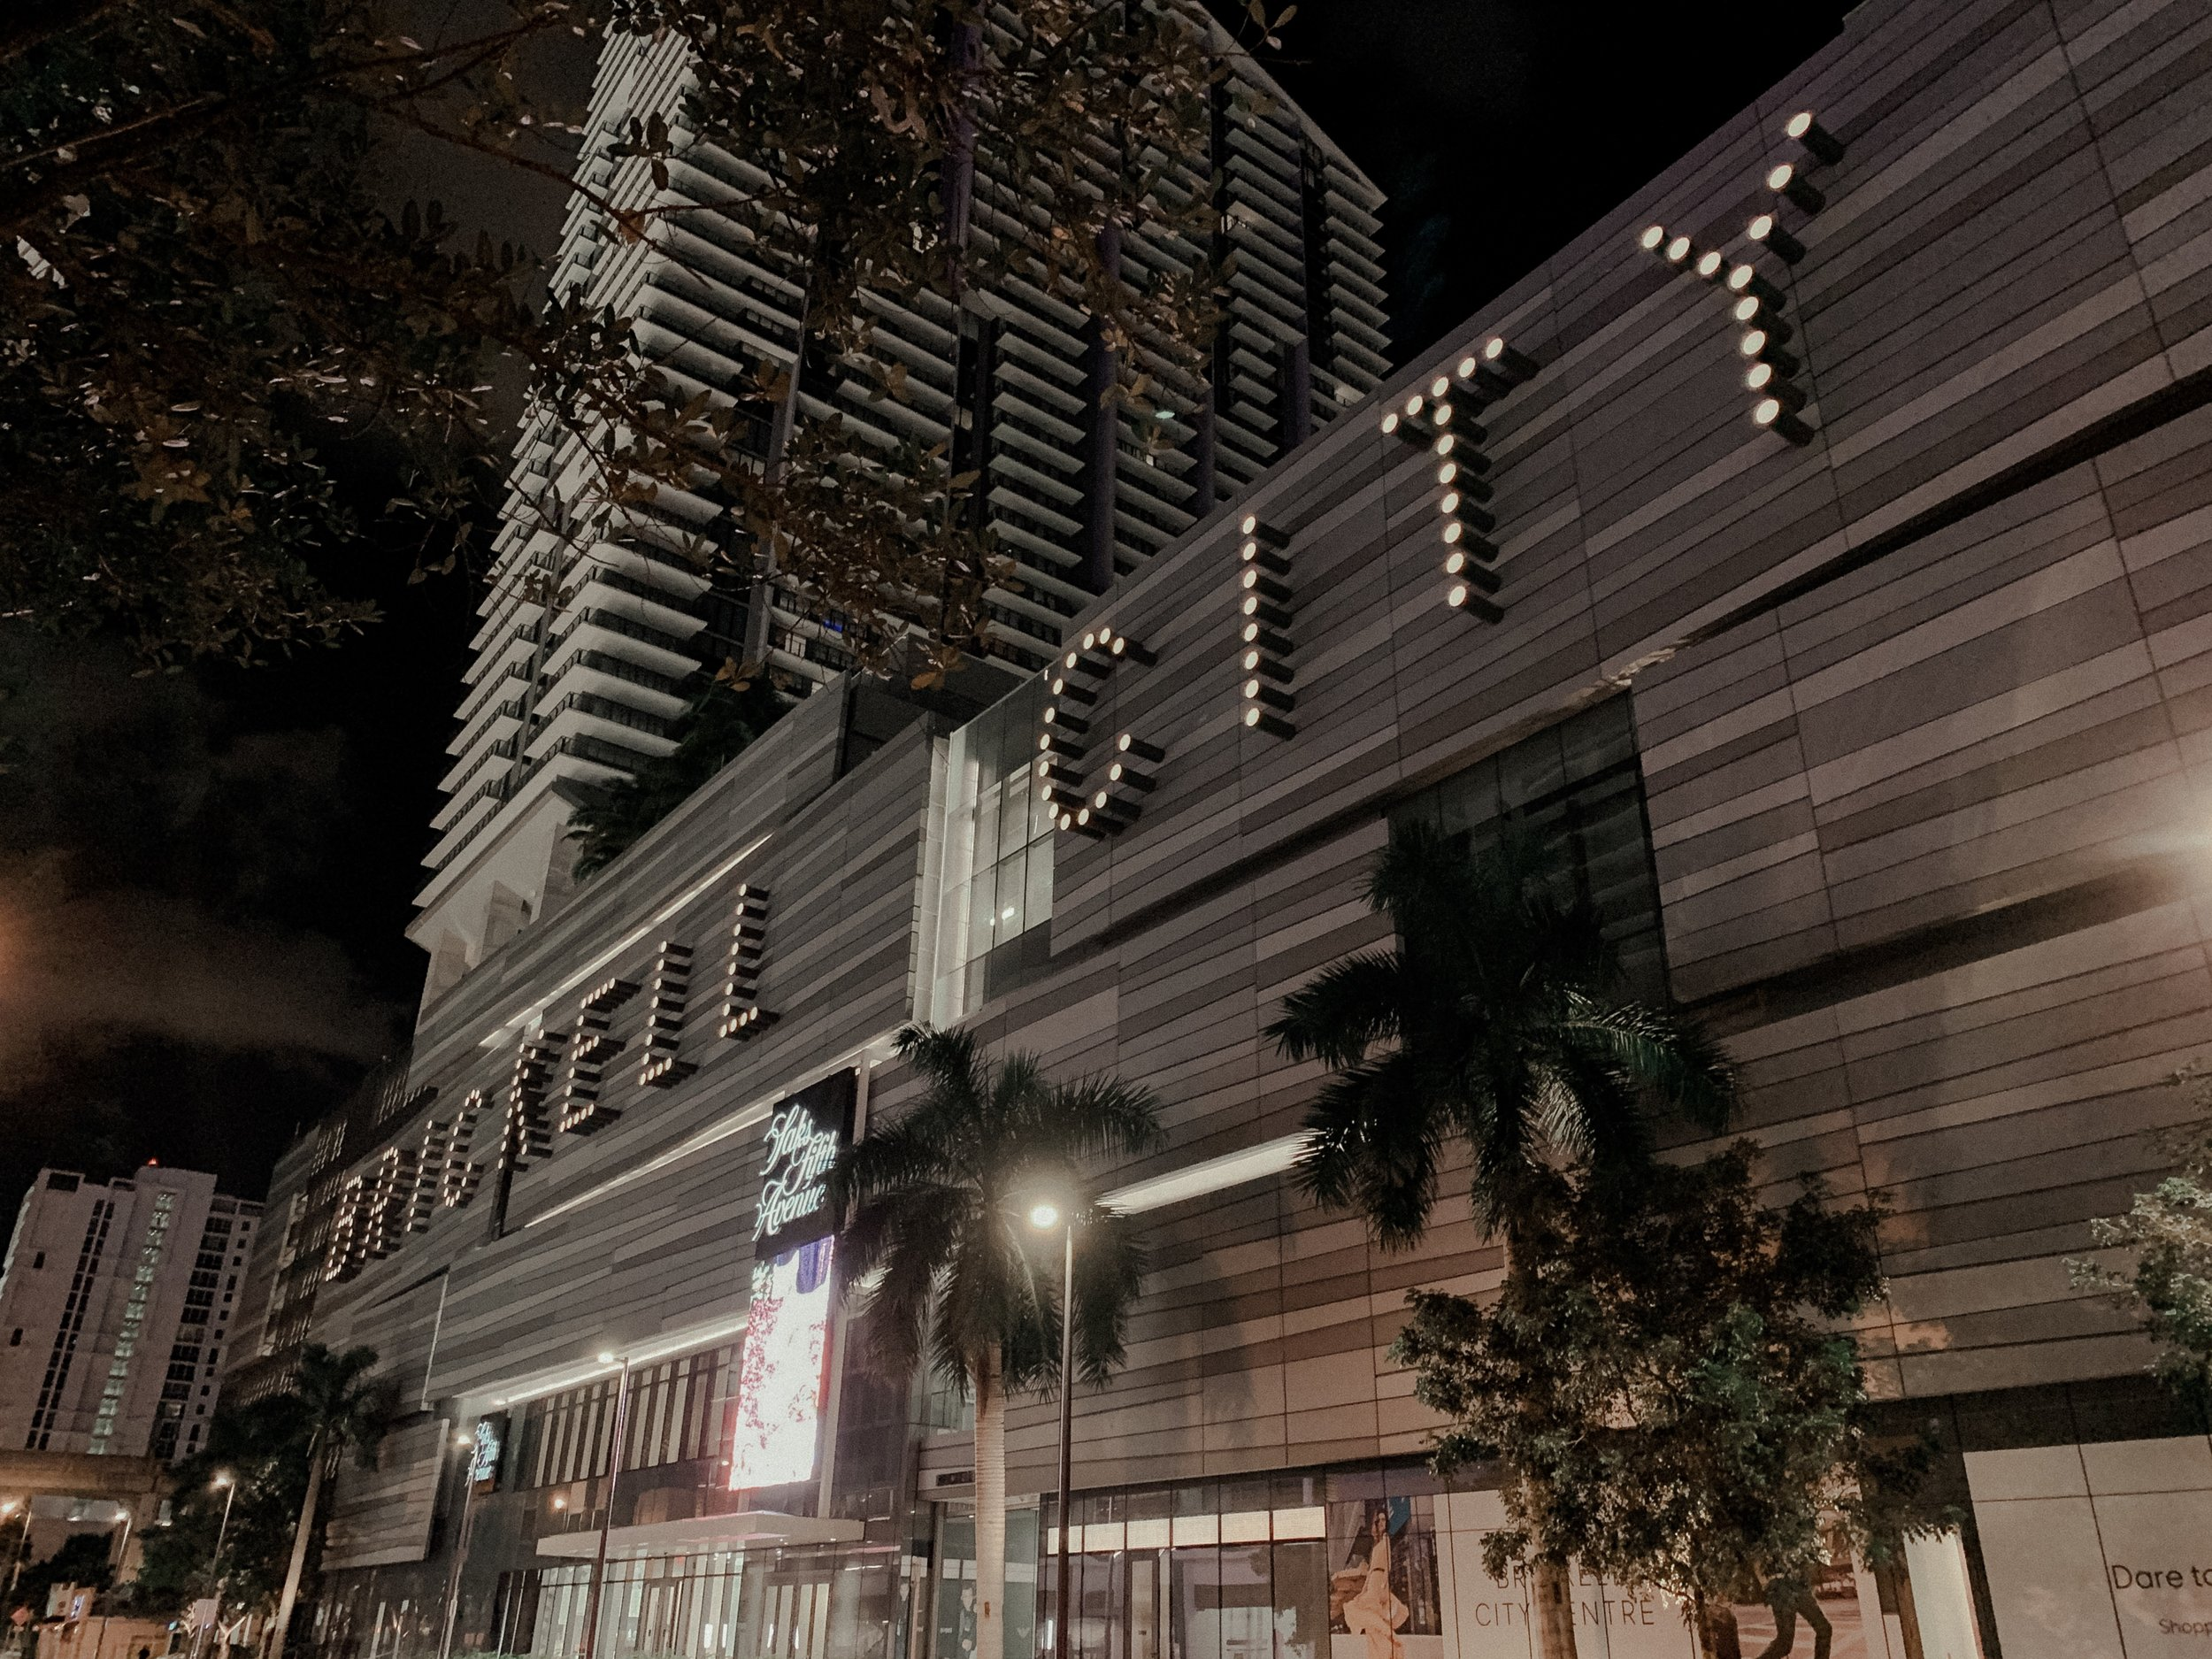 Our First Night in Miami - Brickell City Centre